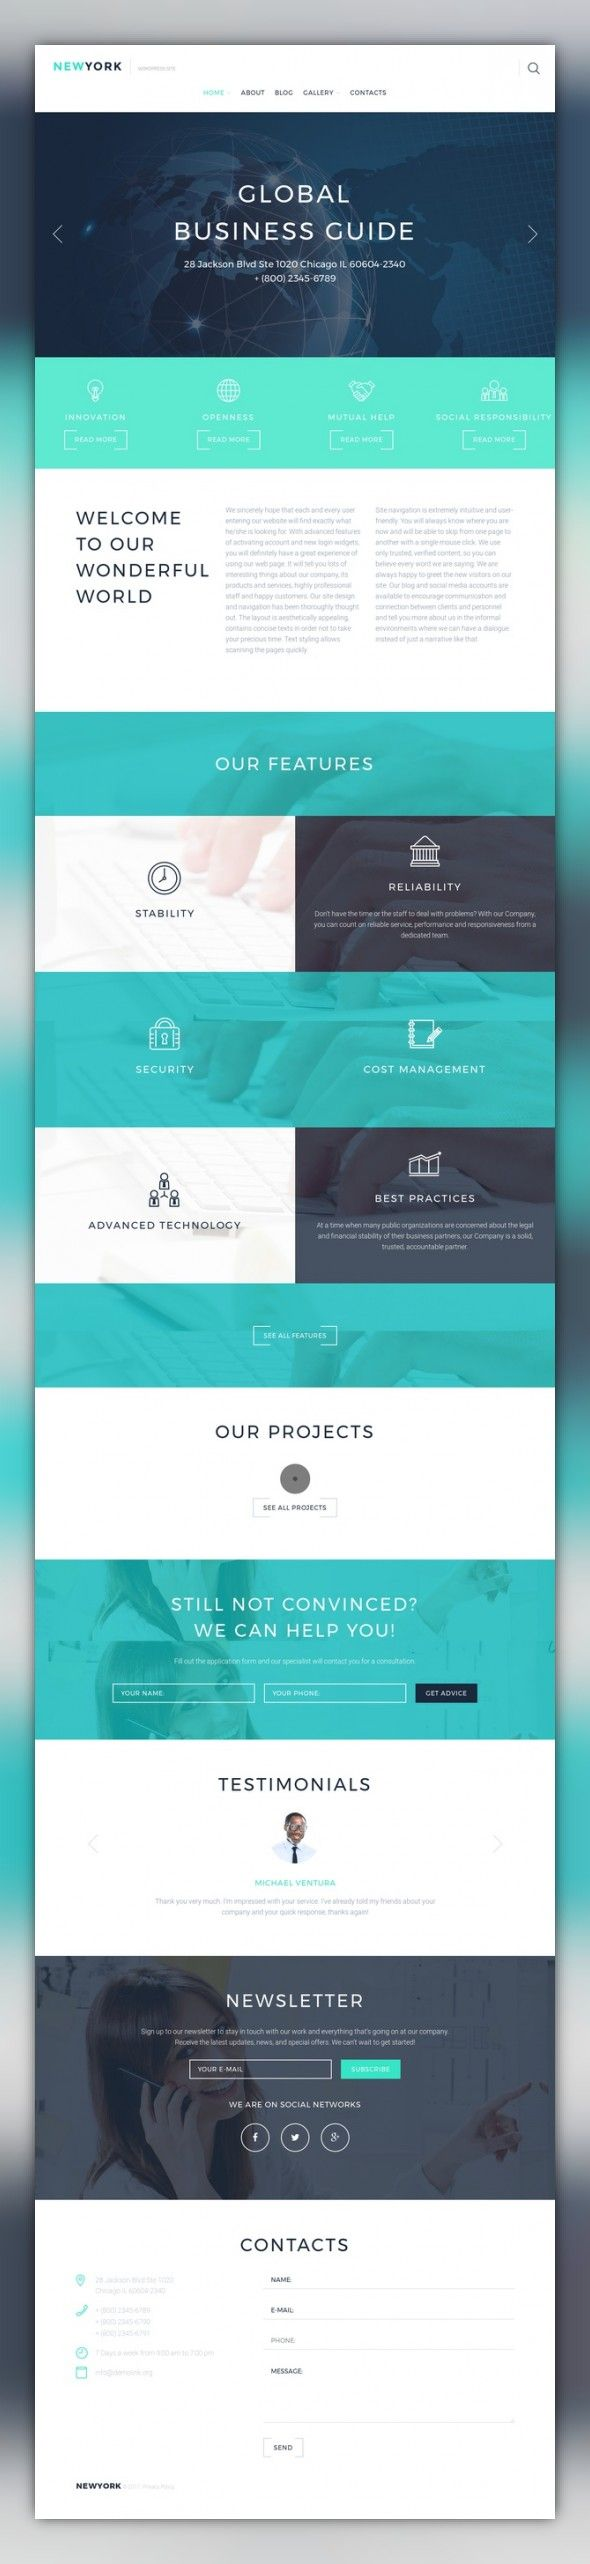 Accounting Website Responsive WordPress Theme CMS & Blog Templates, WordPress Themes, Business & Services The theme will be a perfect match for business projects that need to create a professional and trustworthy online presentation. A minimalist style of the template draws the users' eye to the conten...